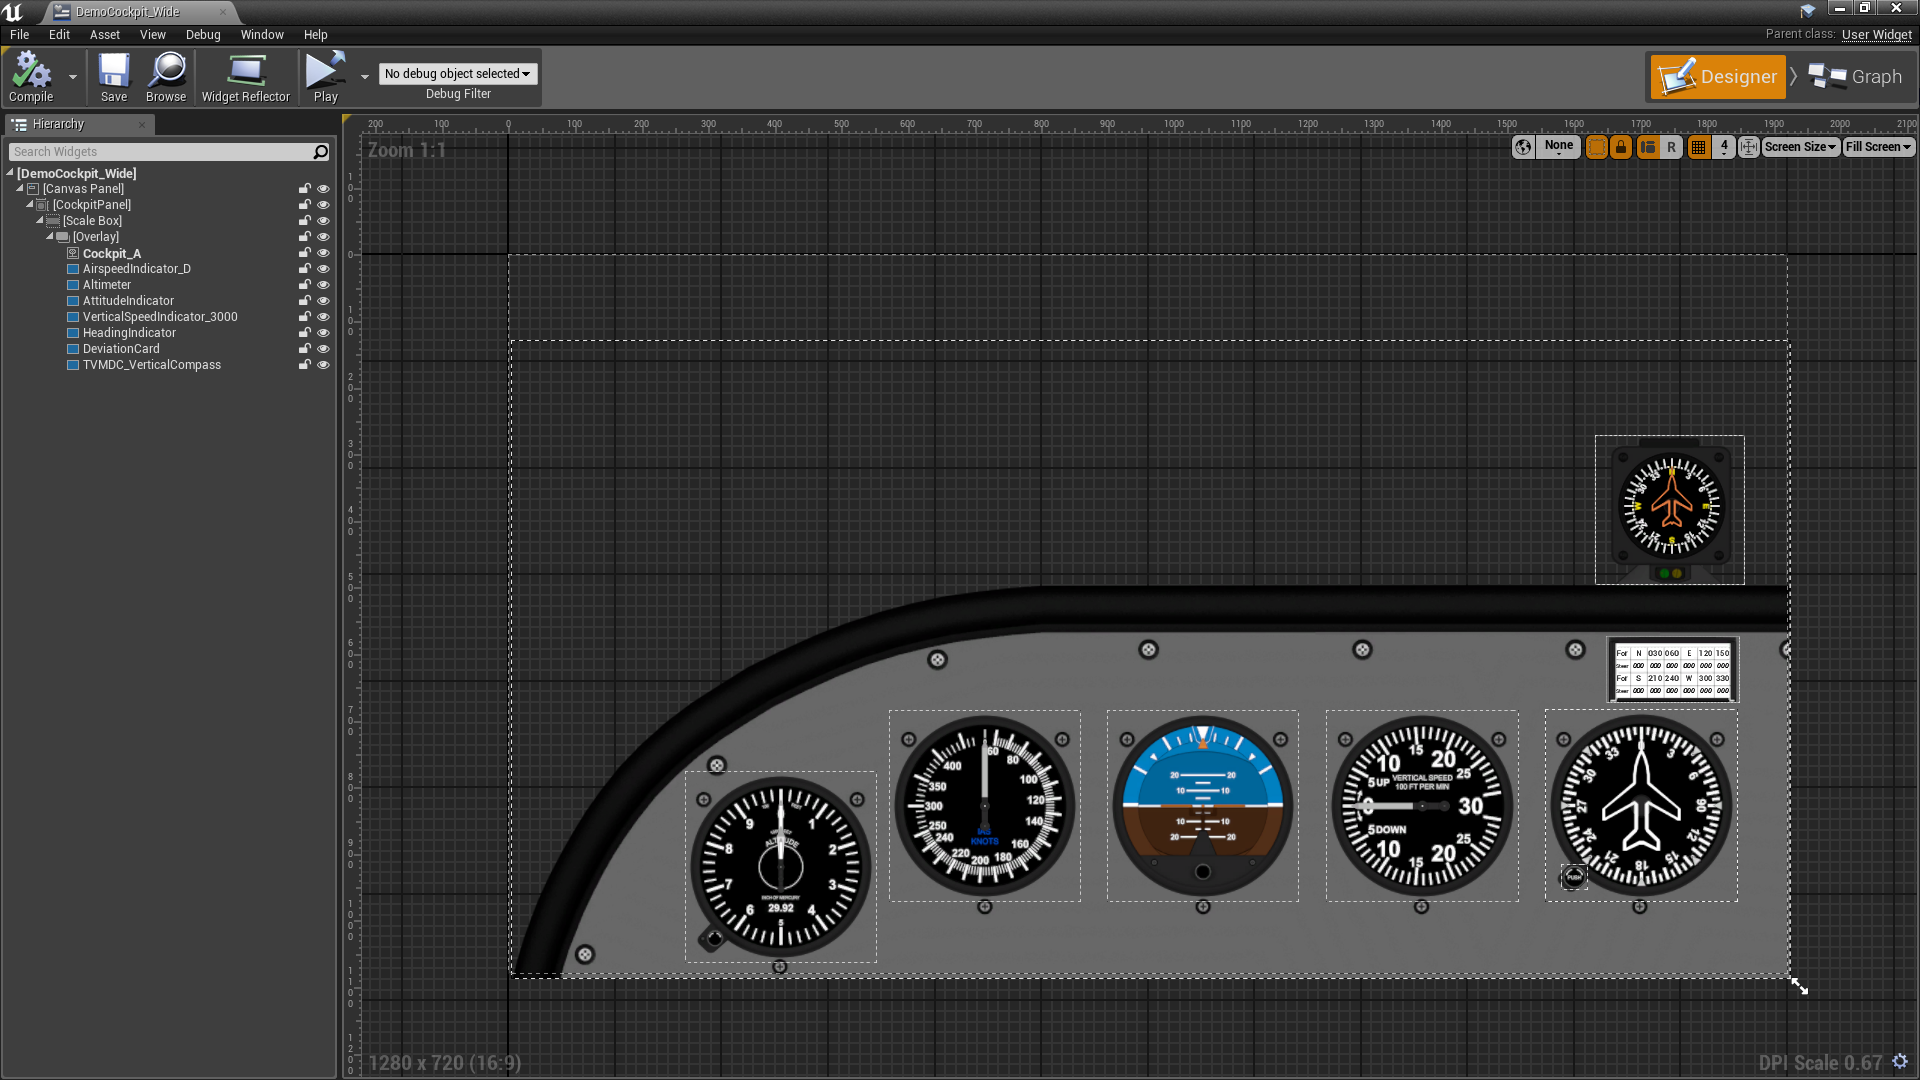 Flight Instrument Pack by McGillivray Games in 2D Assets